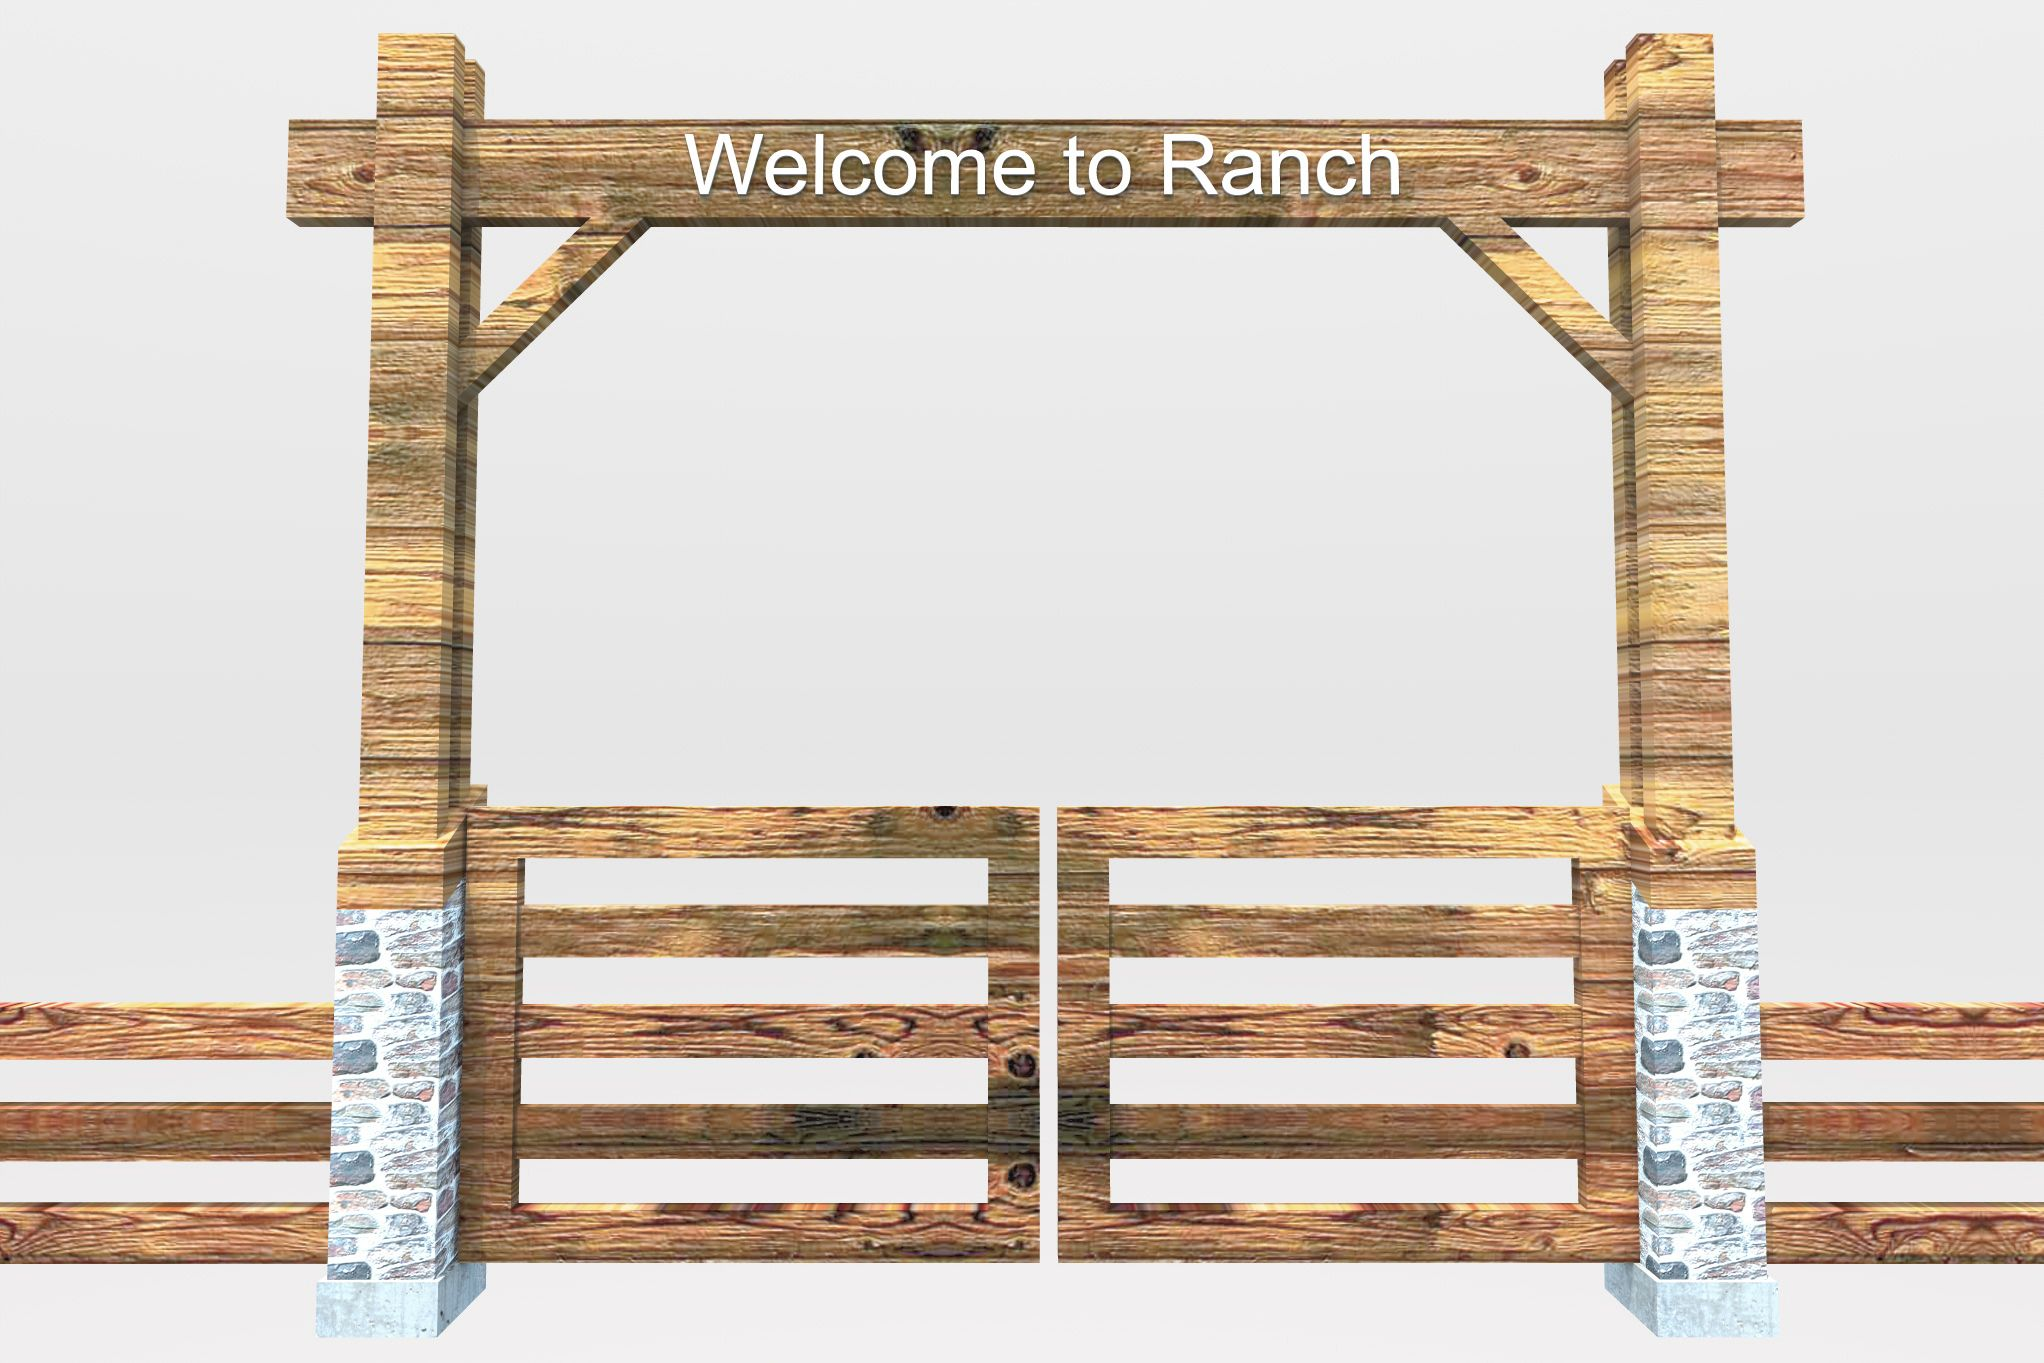 Pix For > Ranch Gate Clipart in 2019.